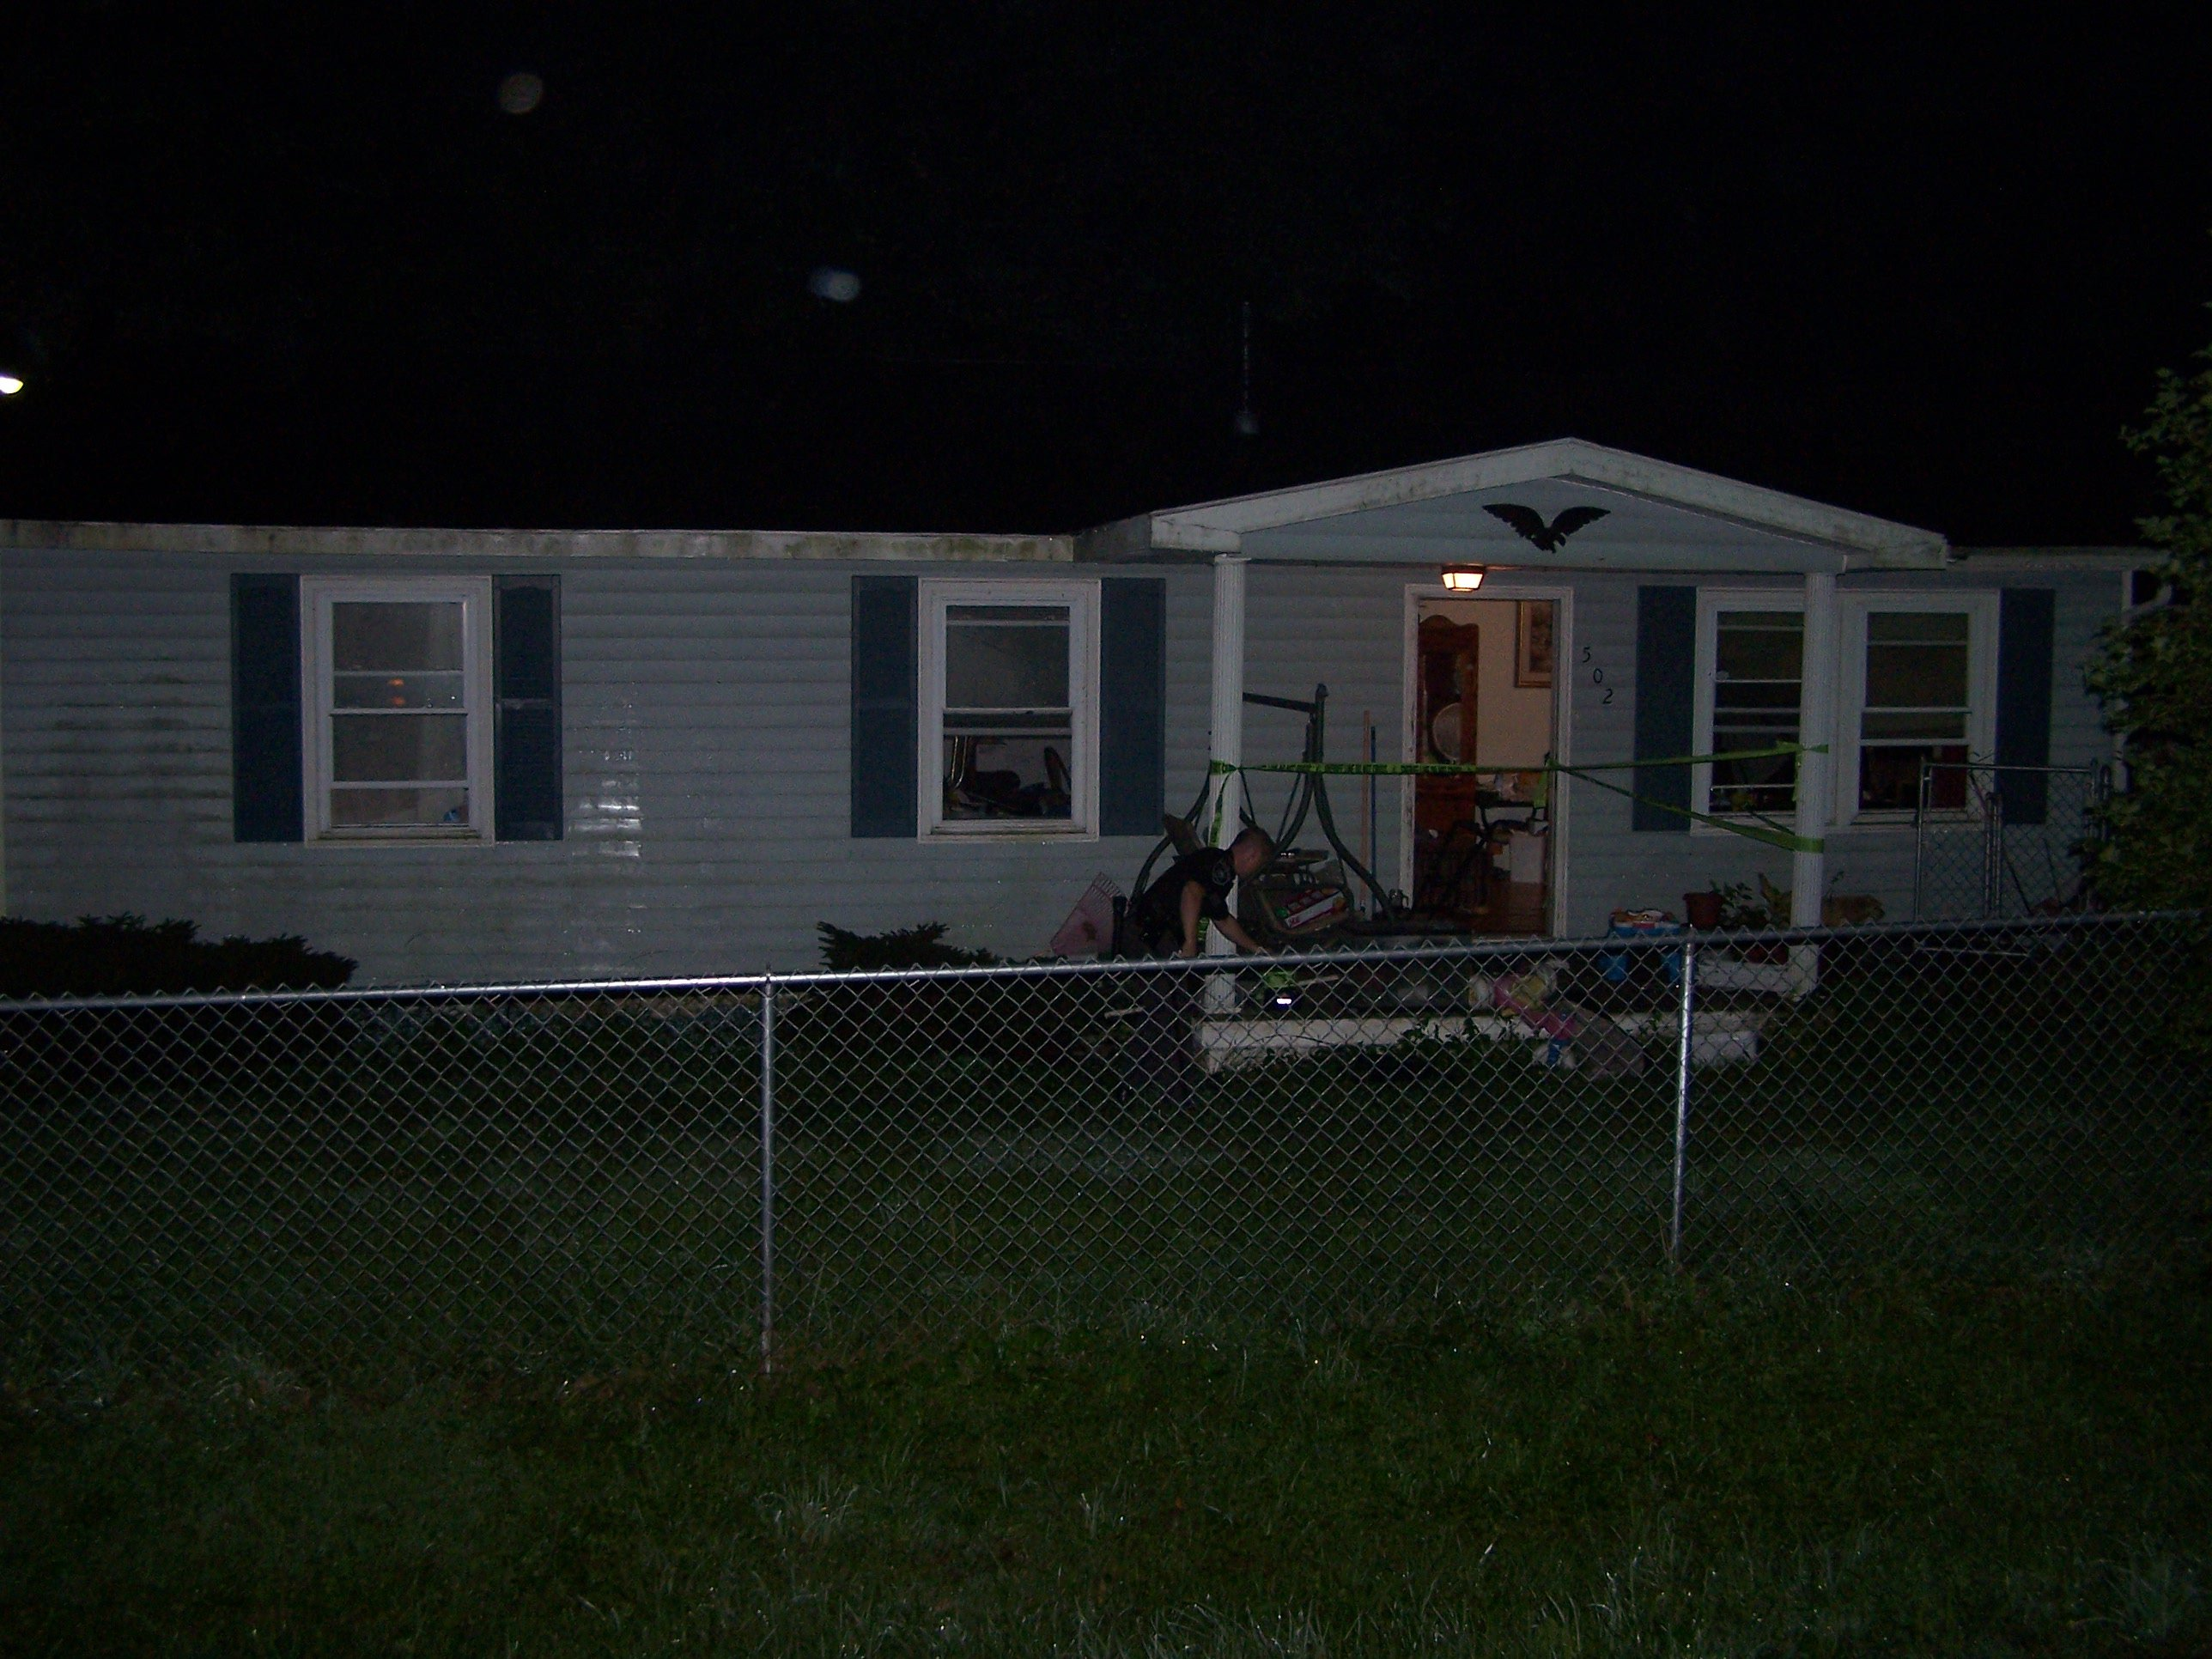 ... meth lab bust - WVVA TV Bluefield Beckley WV News, Weather and Sports